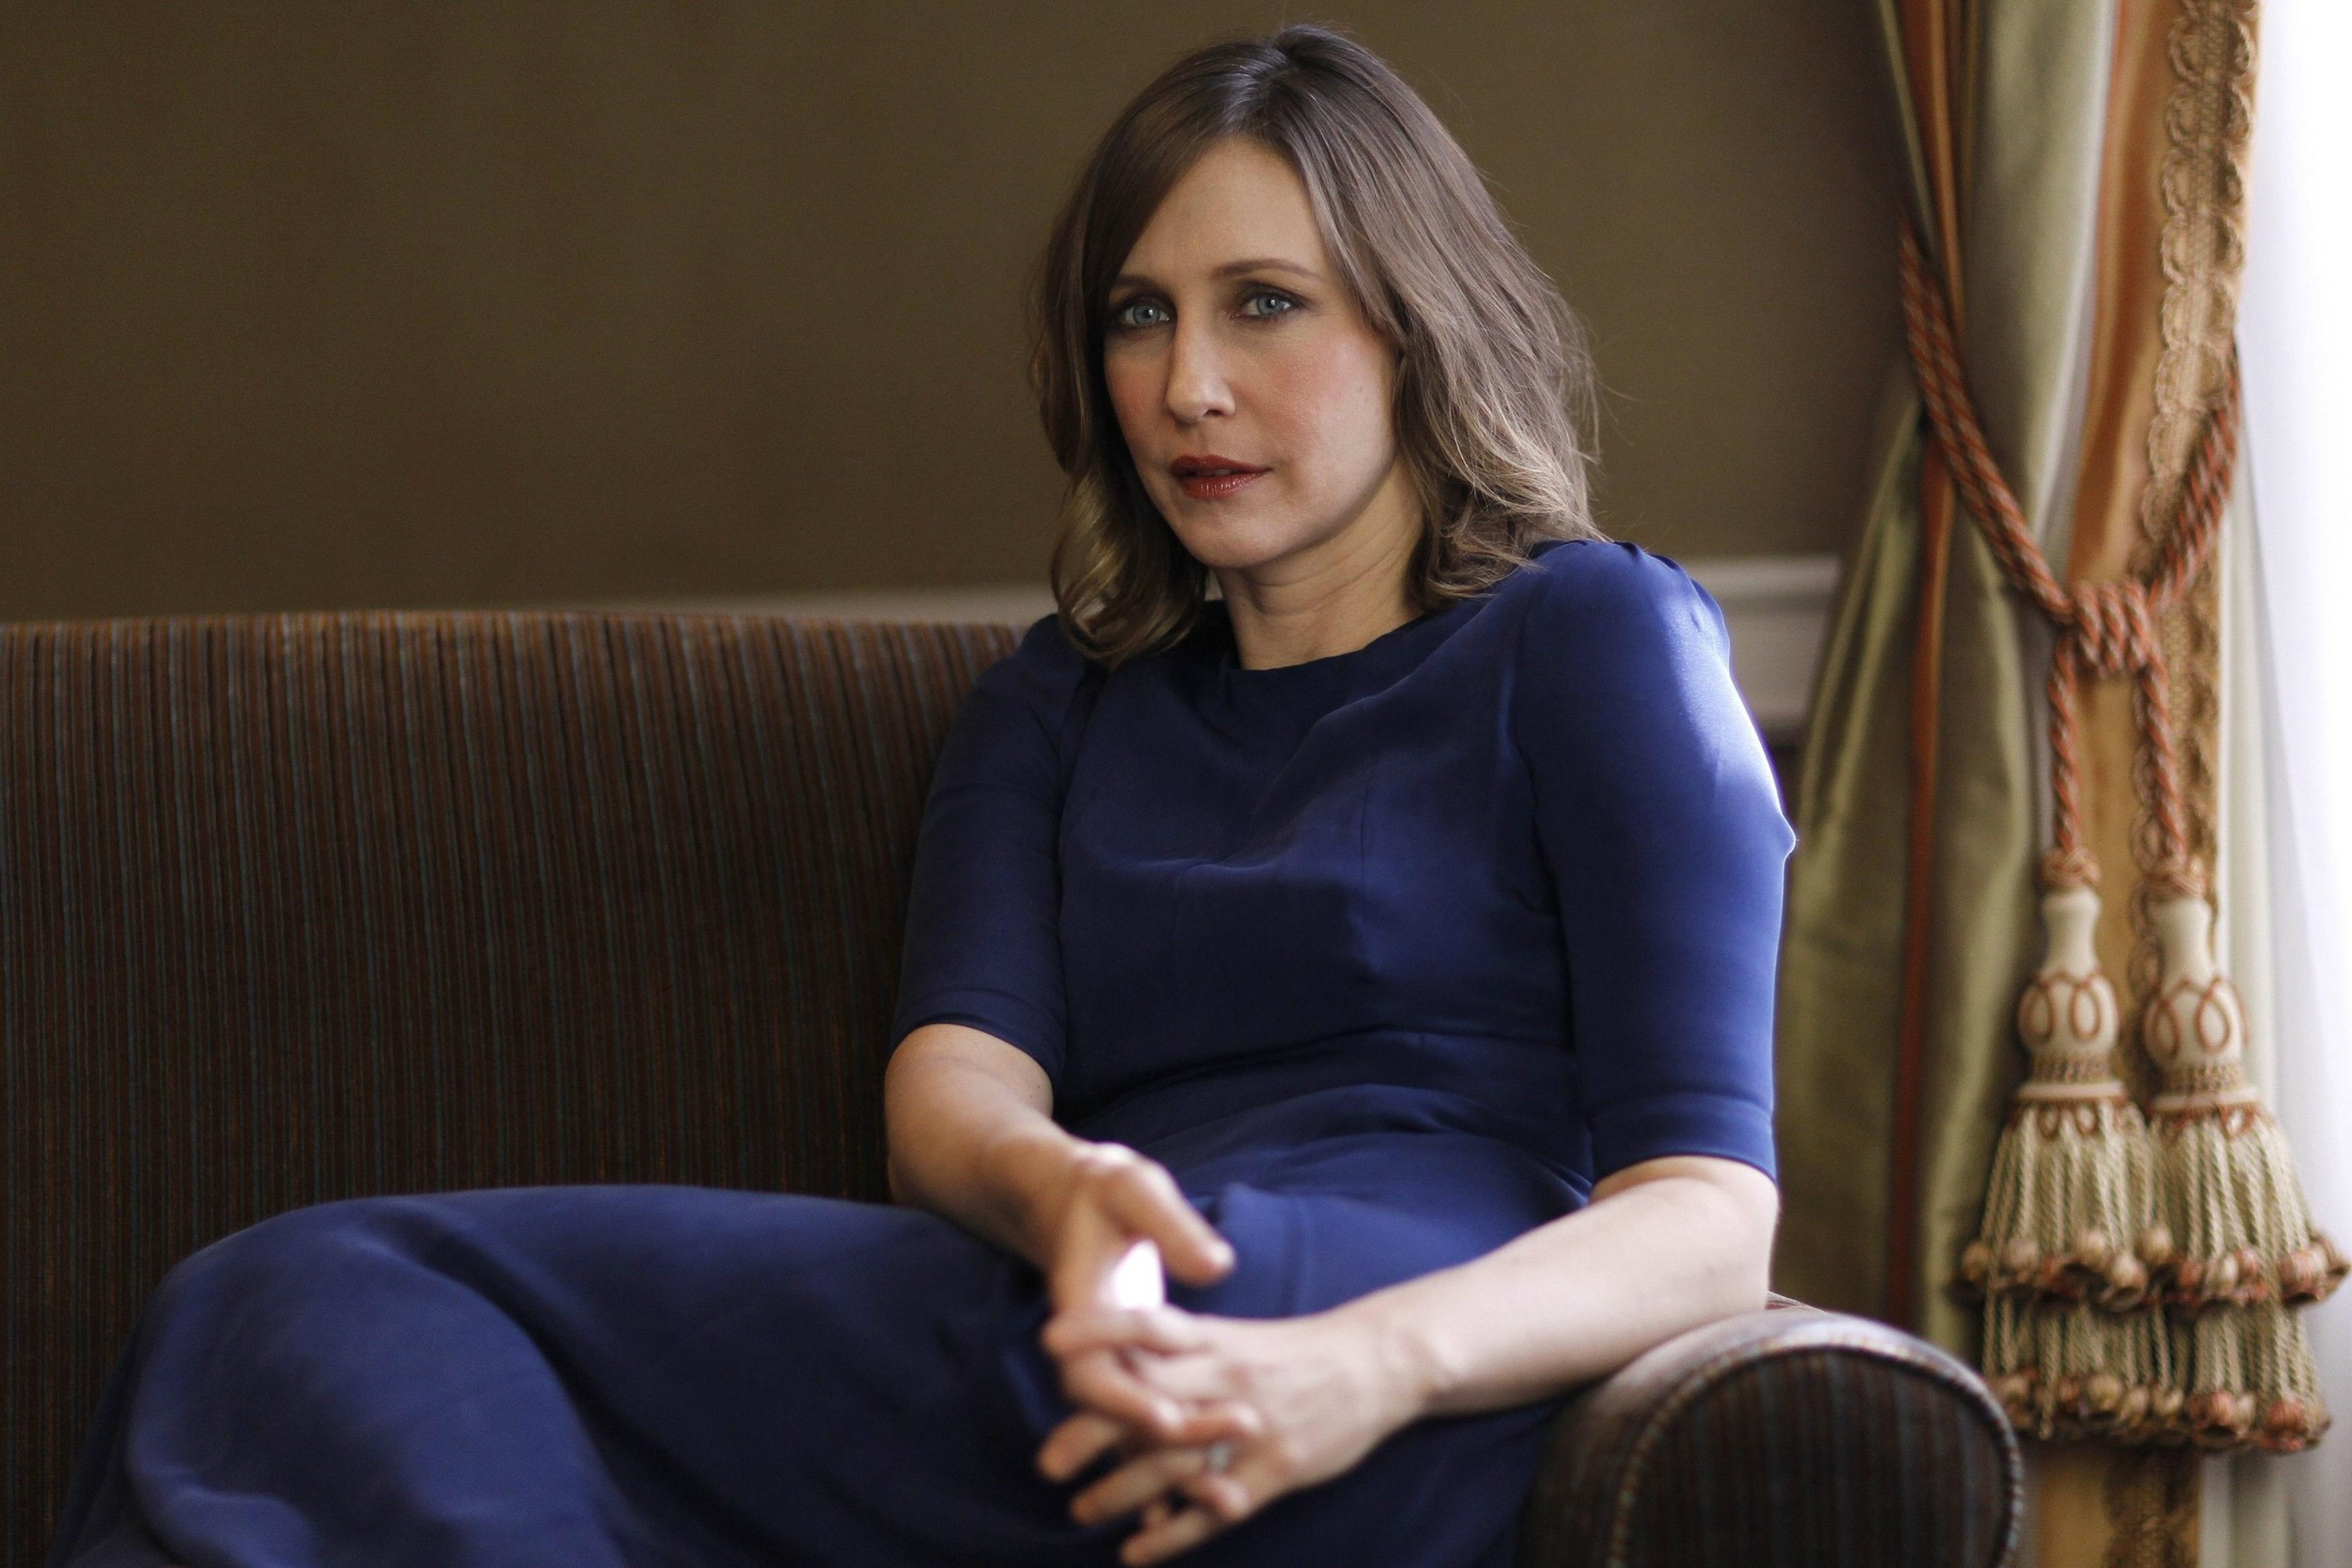 vera farmiga wallpaper background 58745